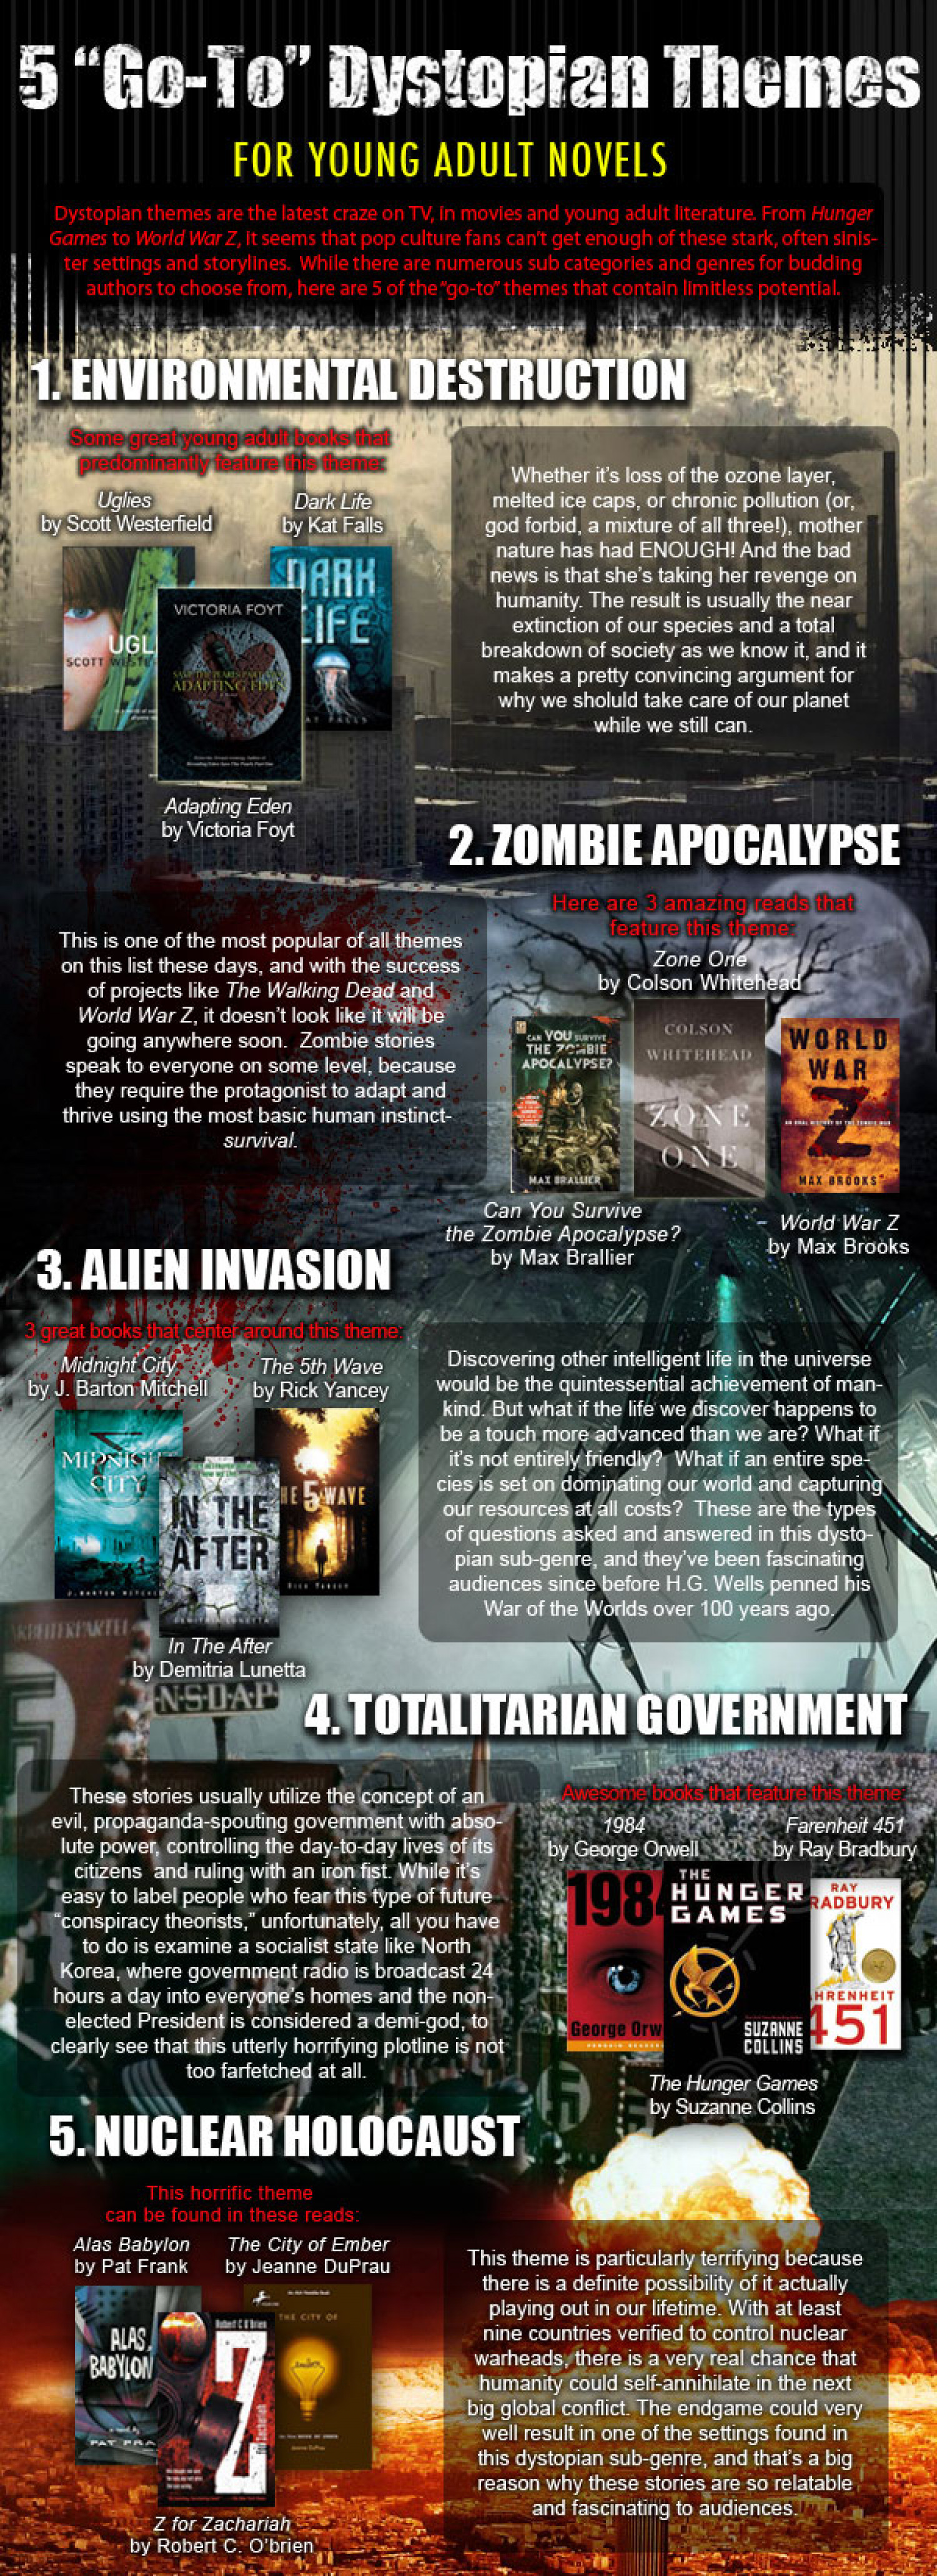 "5 ""Go-To"" Dystopian Themes For Young Adult Novels Infographic"